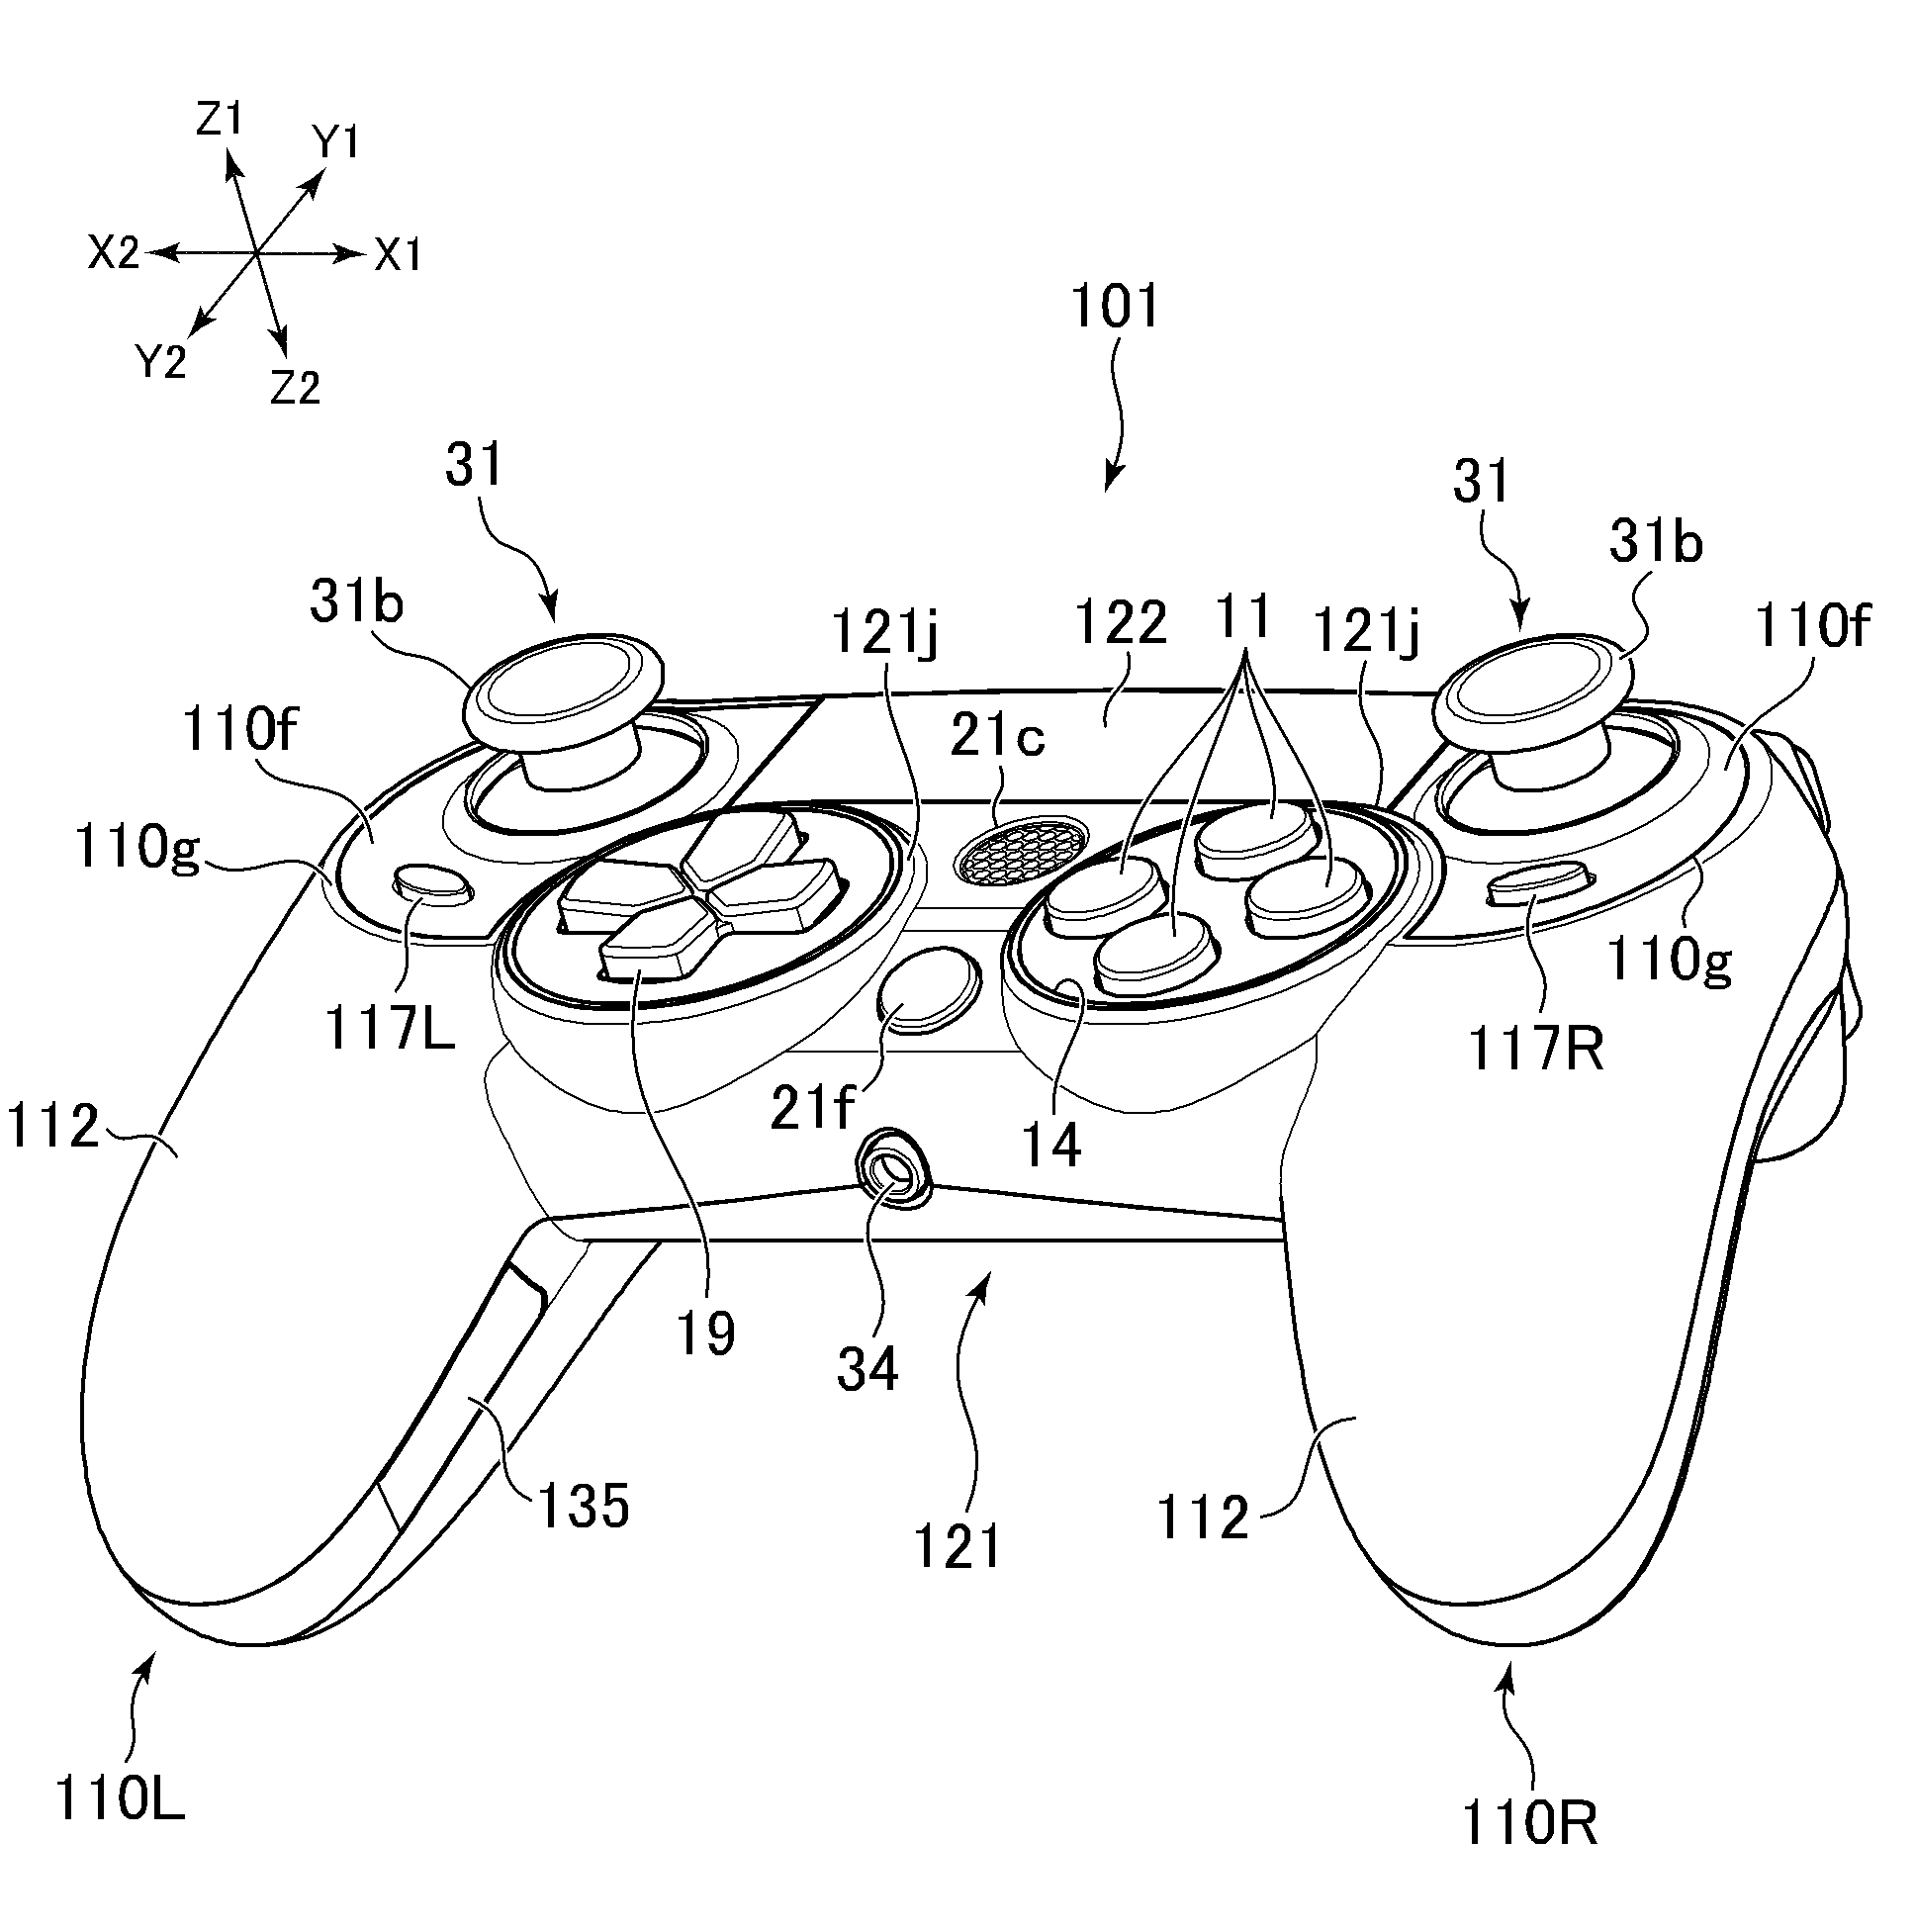 Playstation 4 Controller Patent Shows on on the move storage